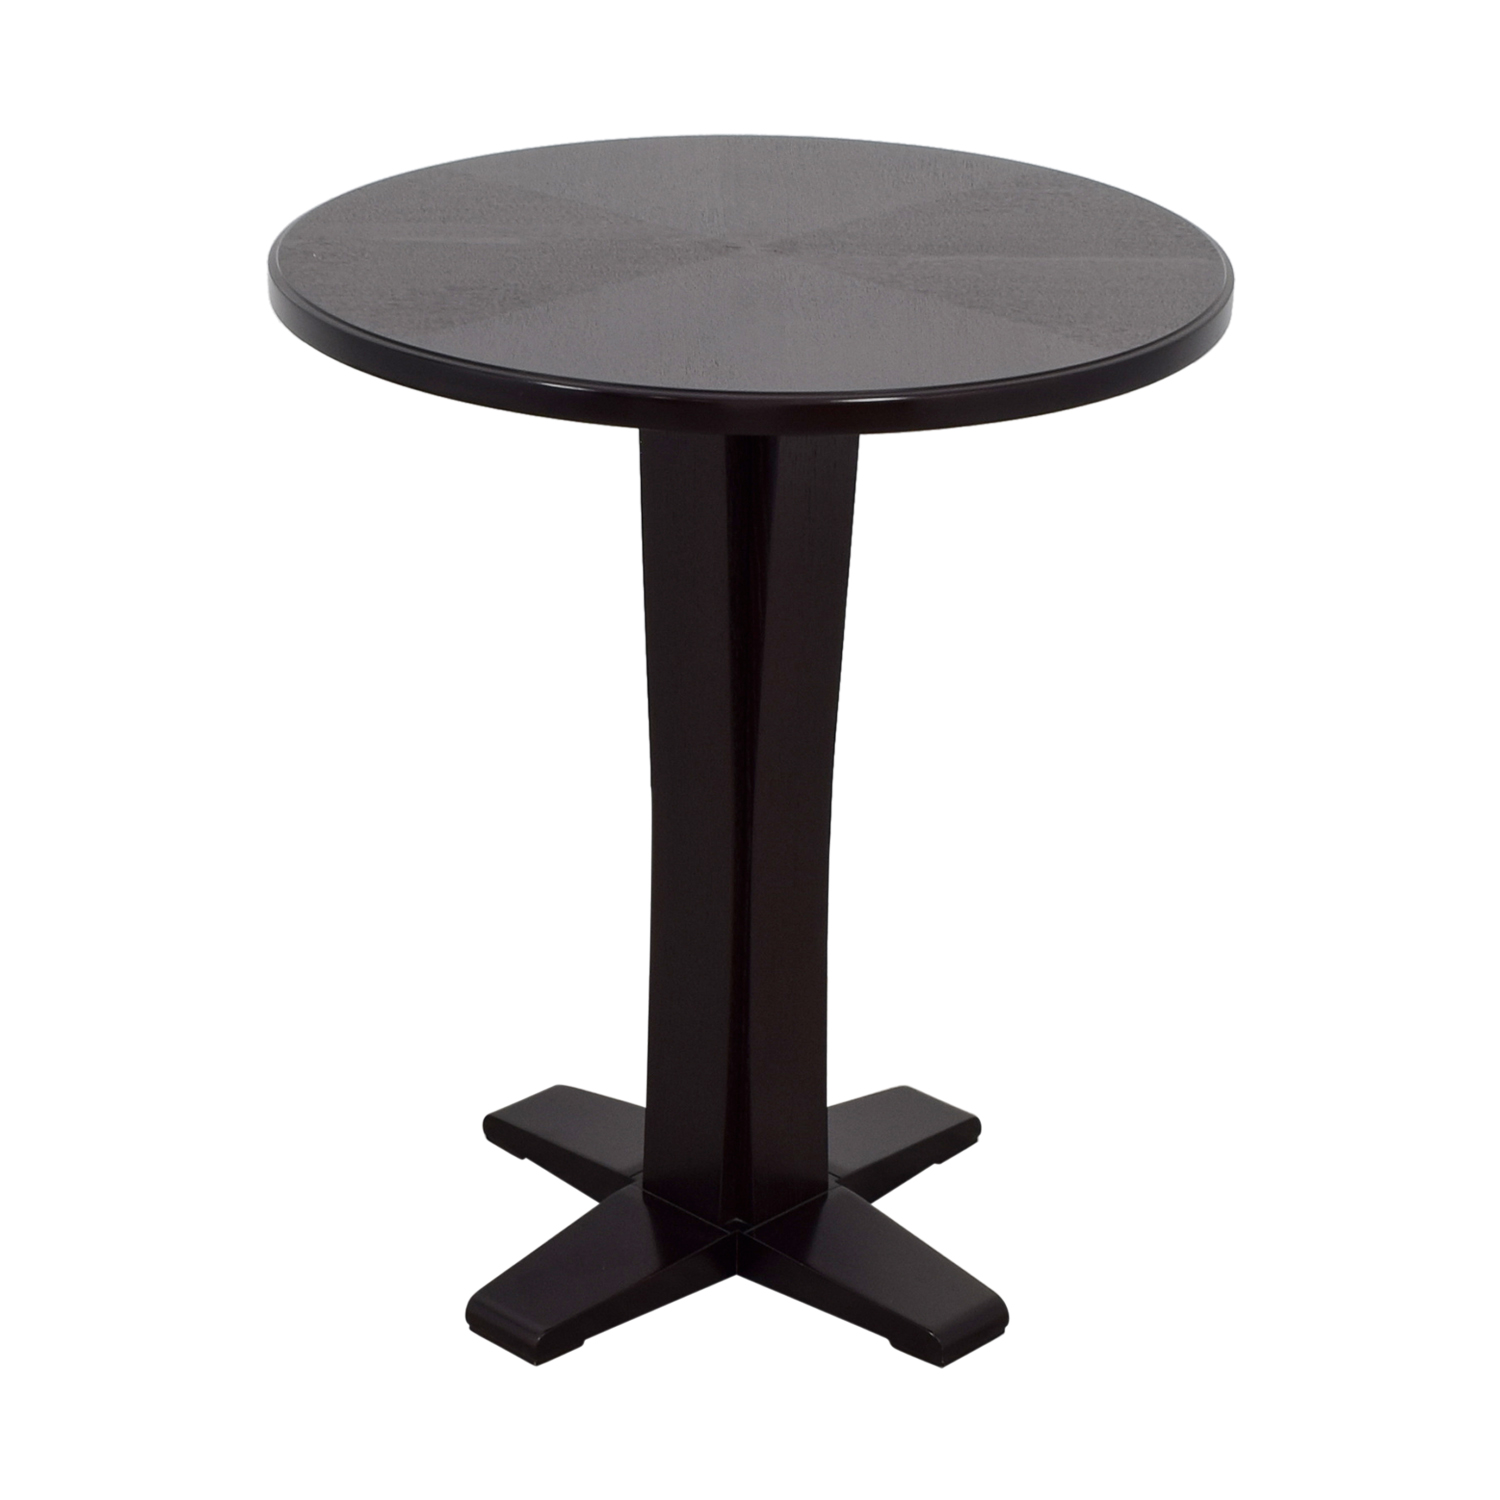 Crate & Barrel Wood Bar Top Table / Accent Tables